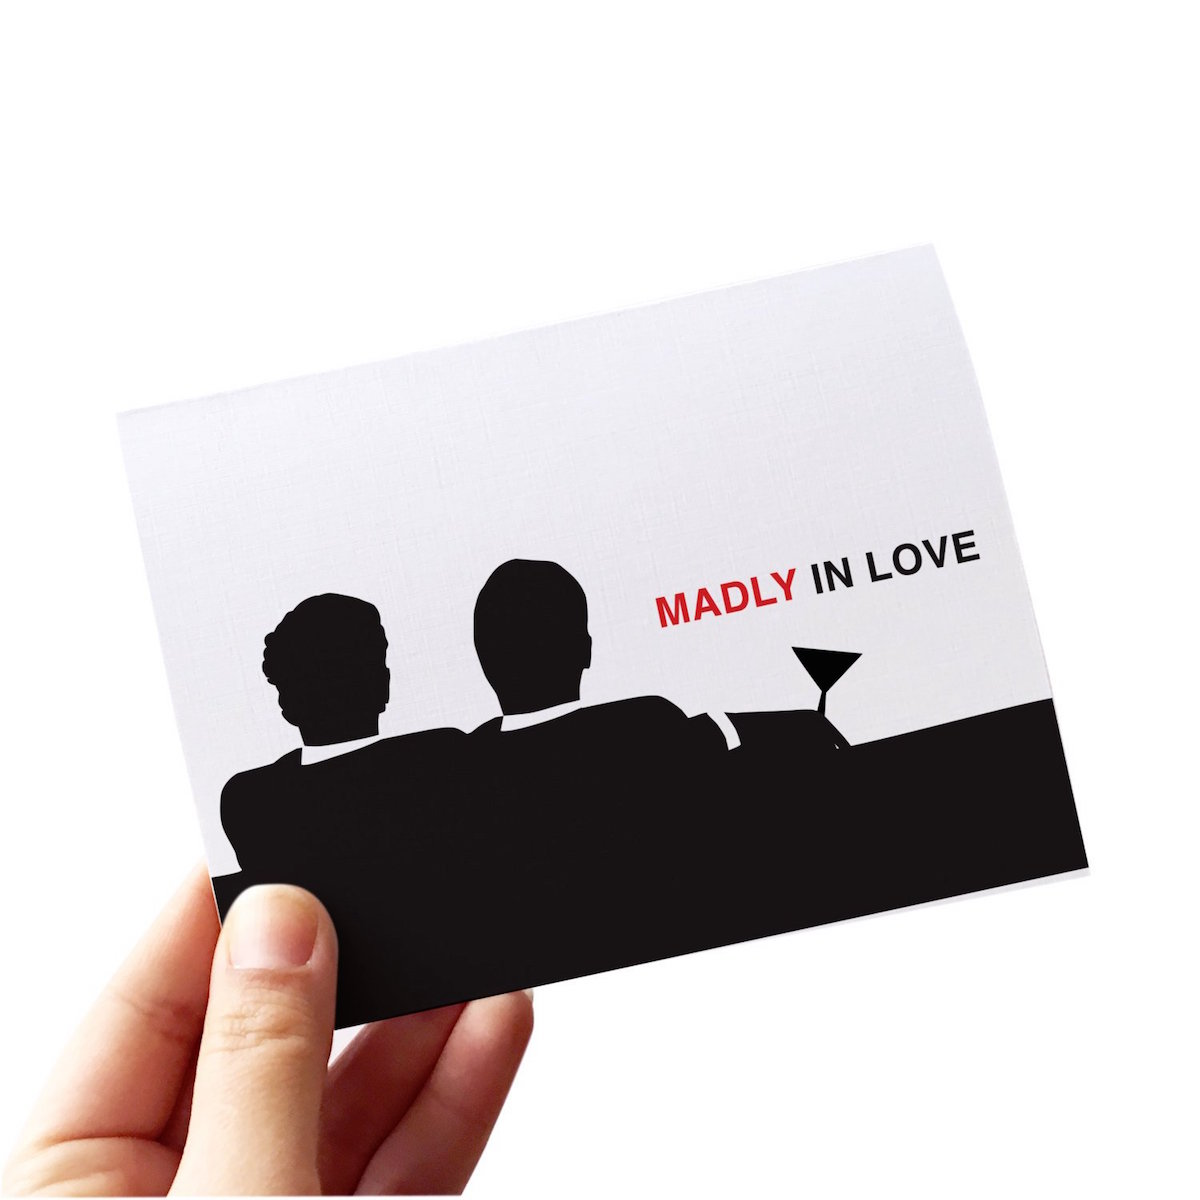 madly-in-love-mad-men-inspired-wedding-card